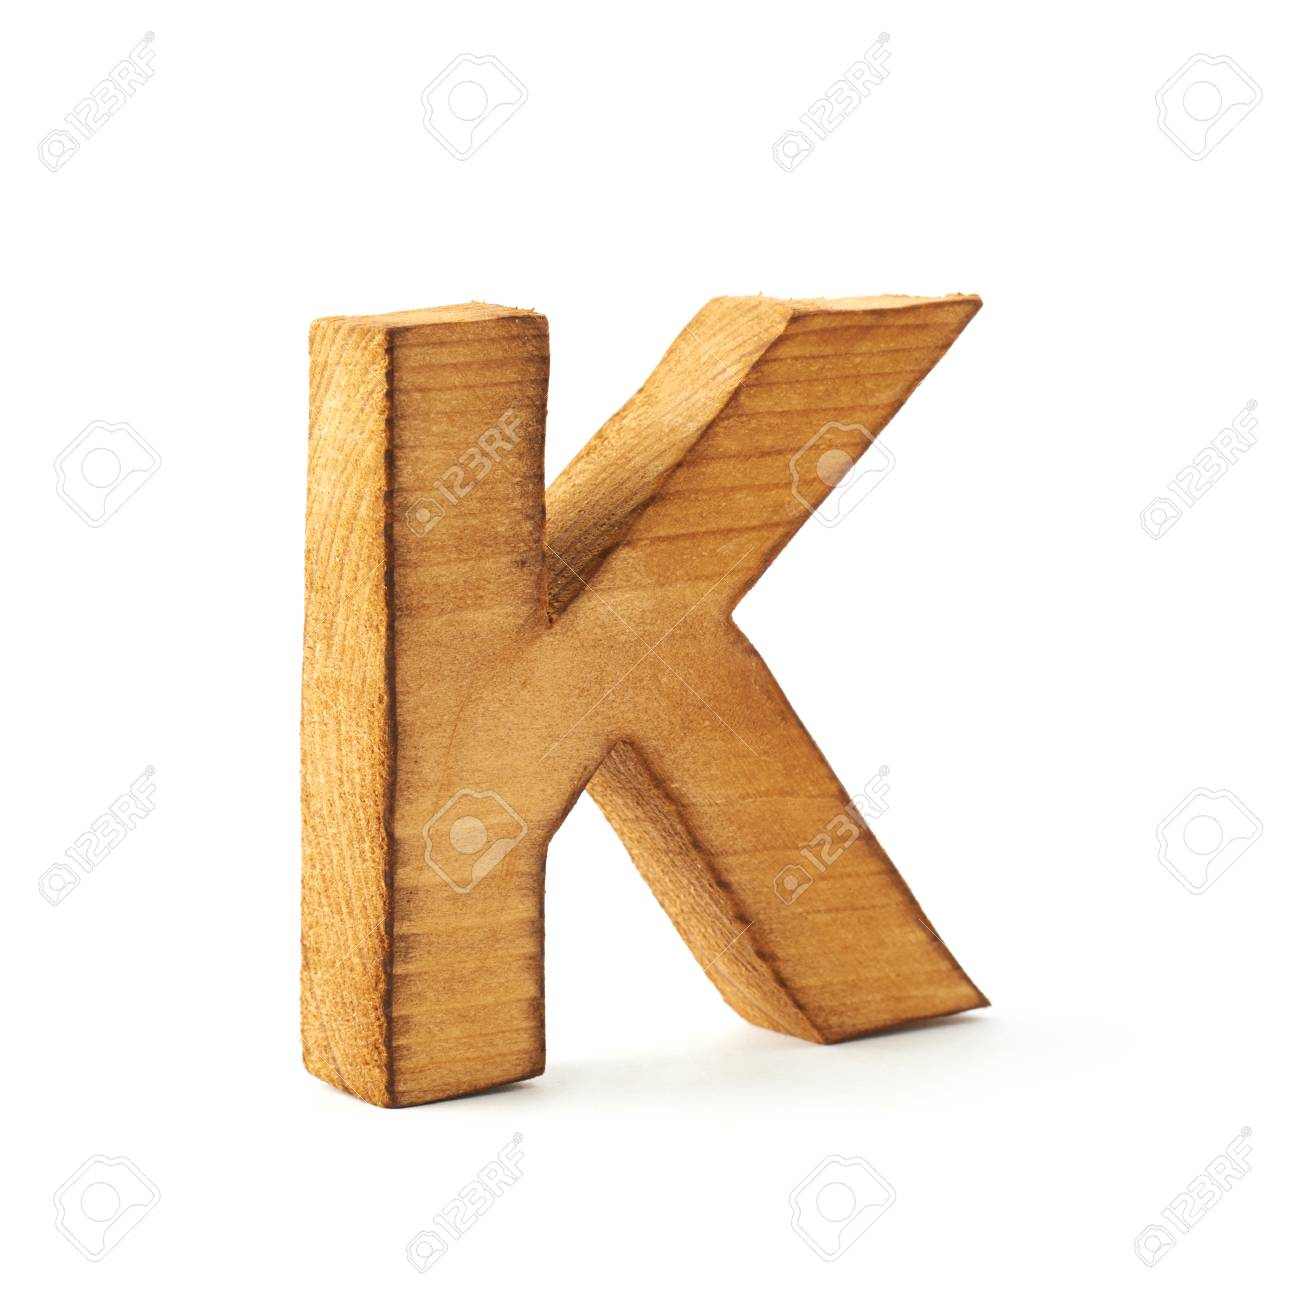 single capital block wooden letter k isolated over the white background stock photo 36074823